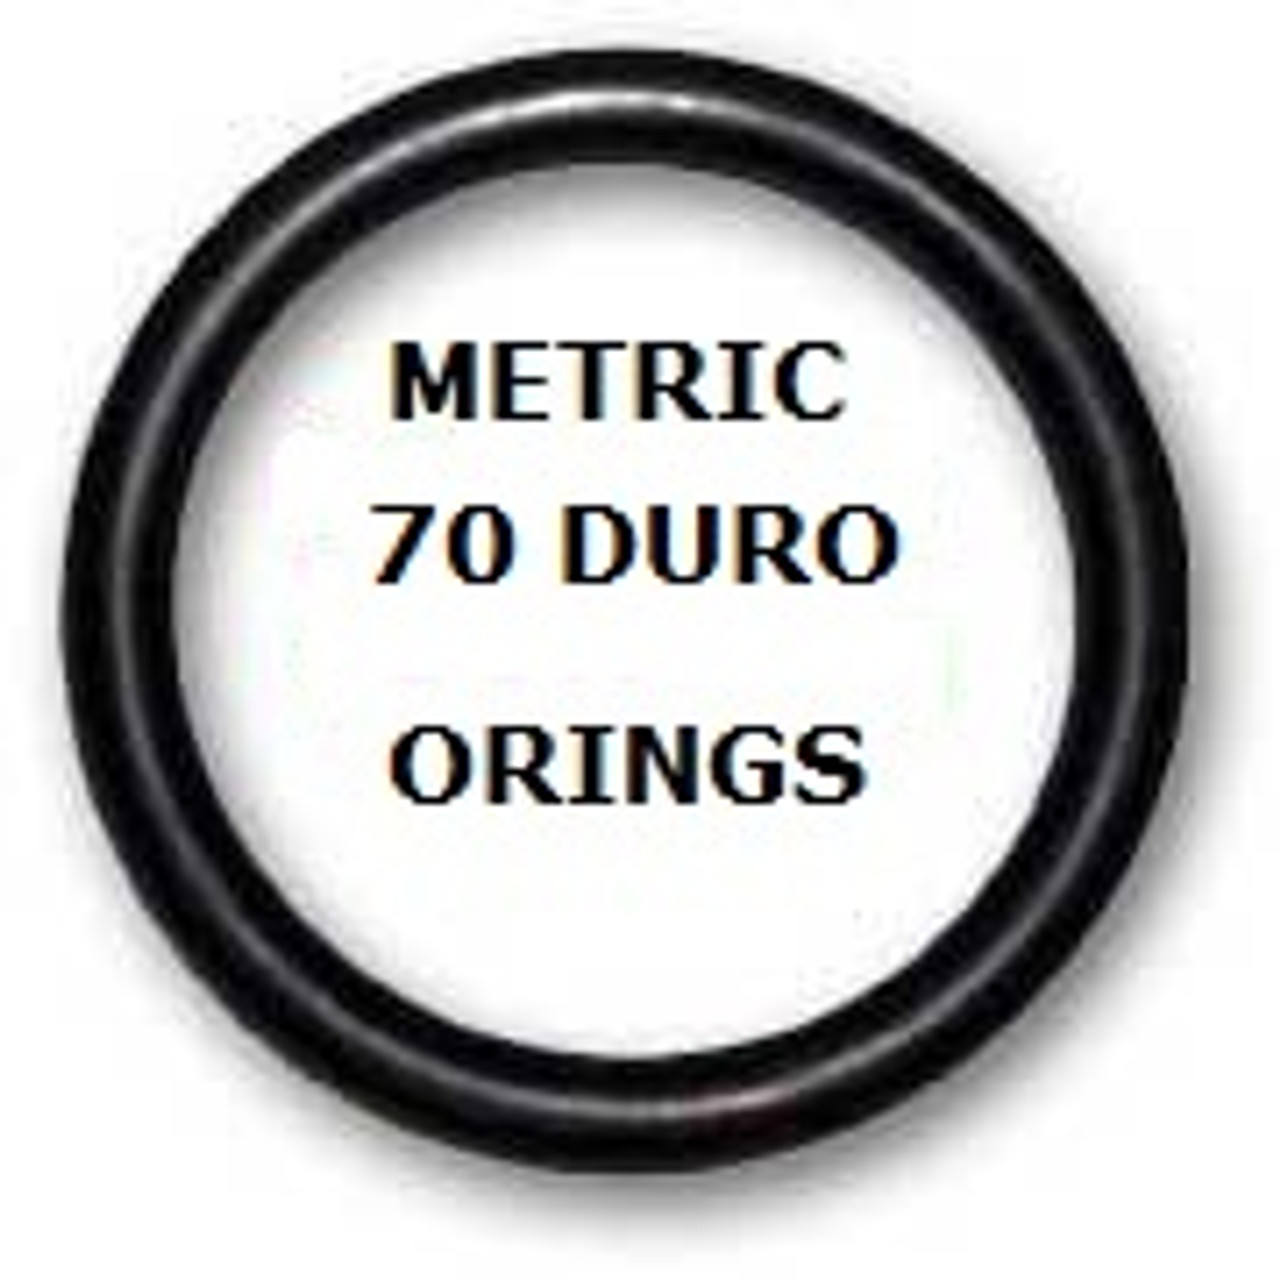 Metric Buna  O-rings 11.5 x 2mm Minimum 25 pcs